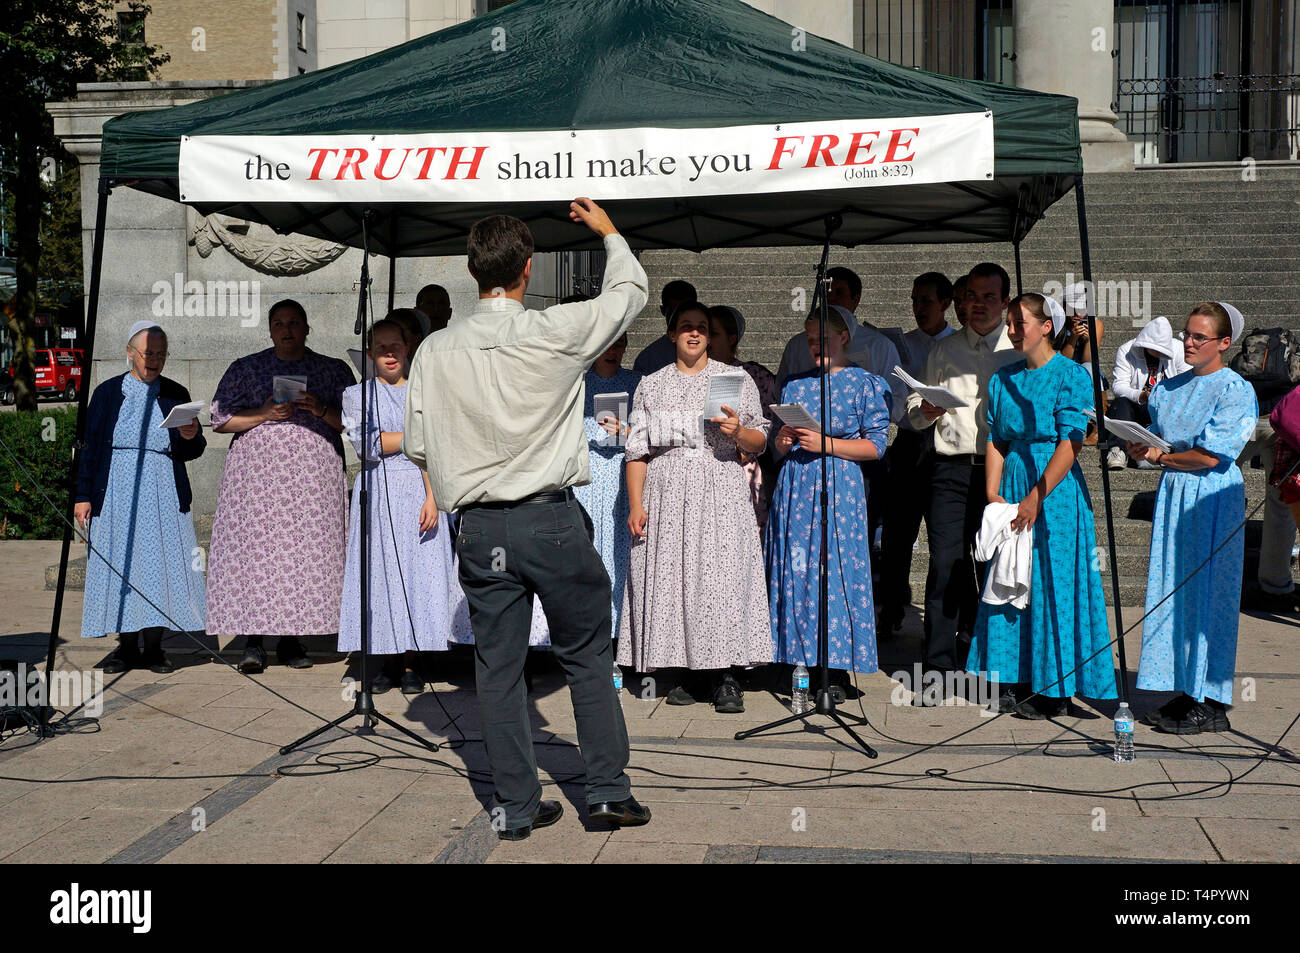 a-mennonite-choir-performing-in-downtown